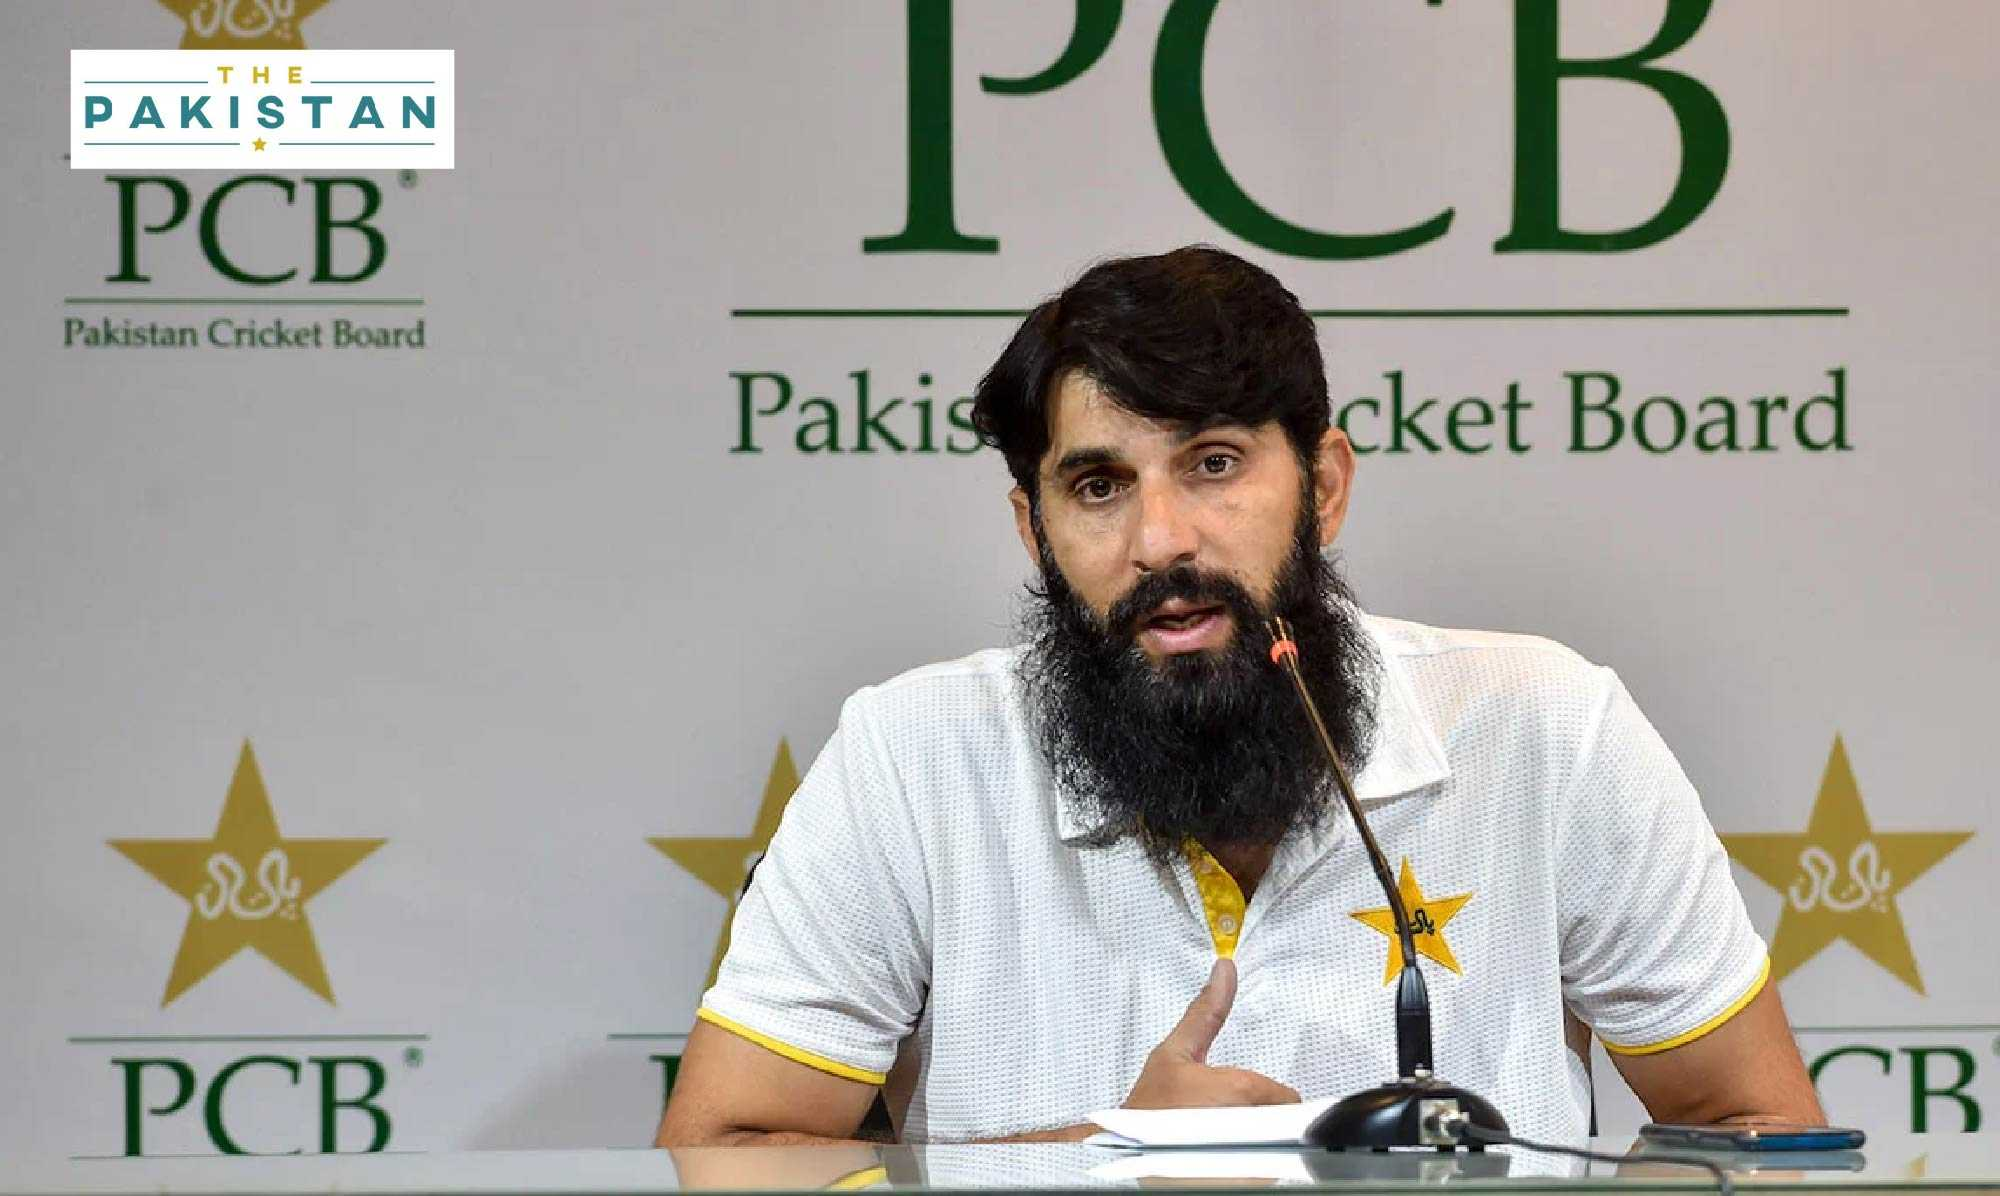 Misbah resigns as PCB chief selector: sources